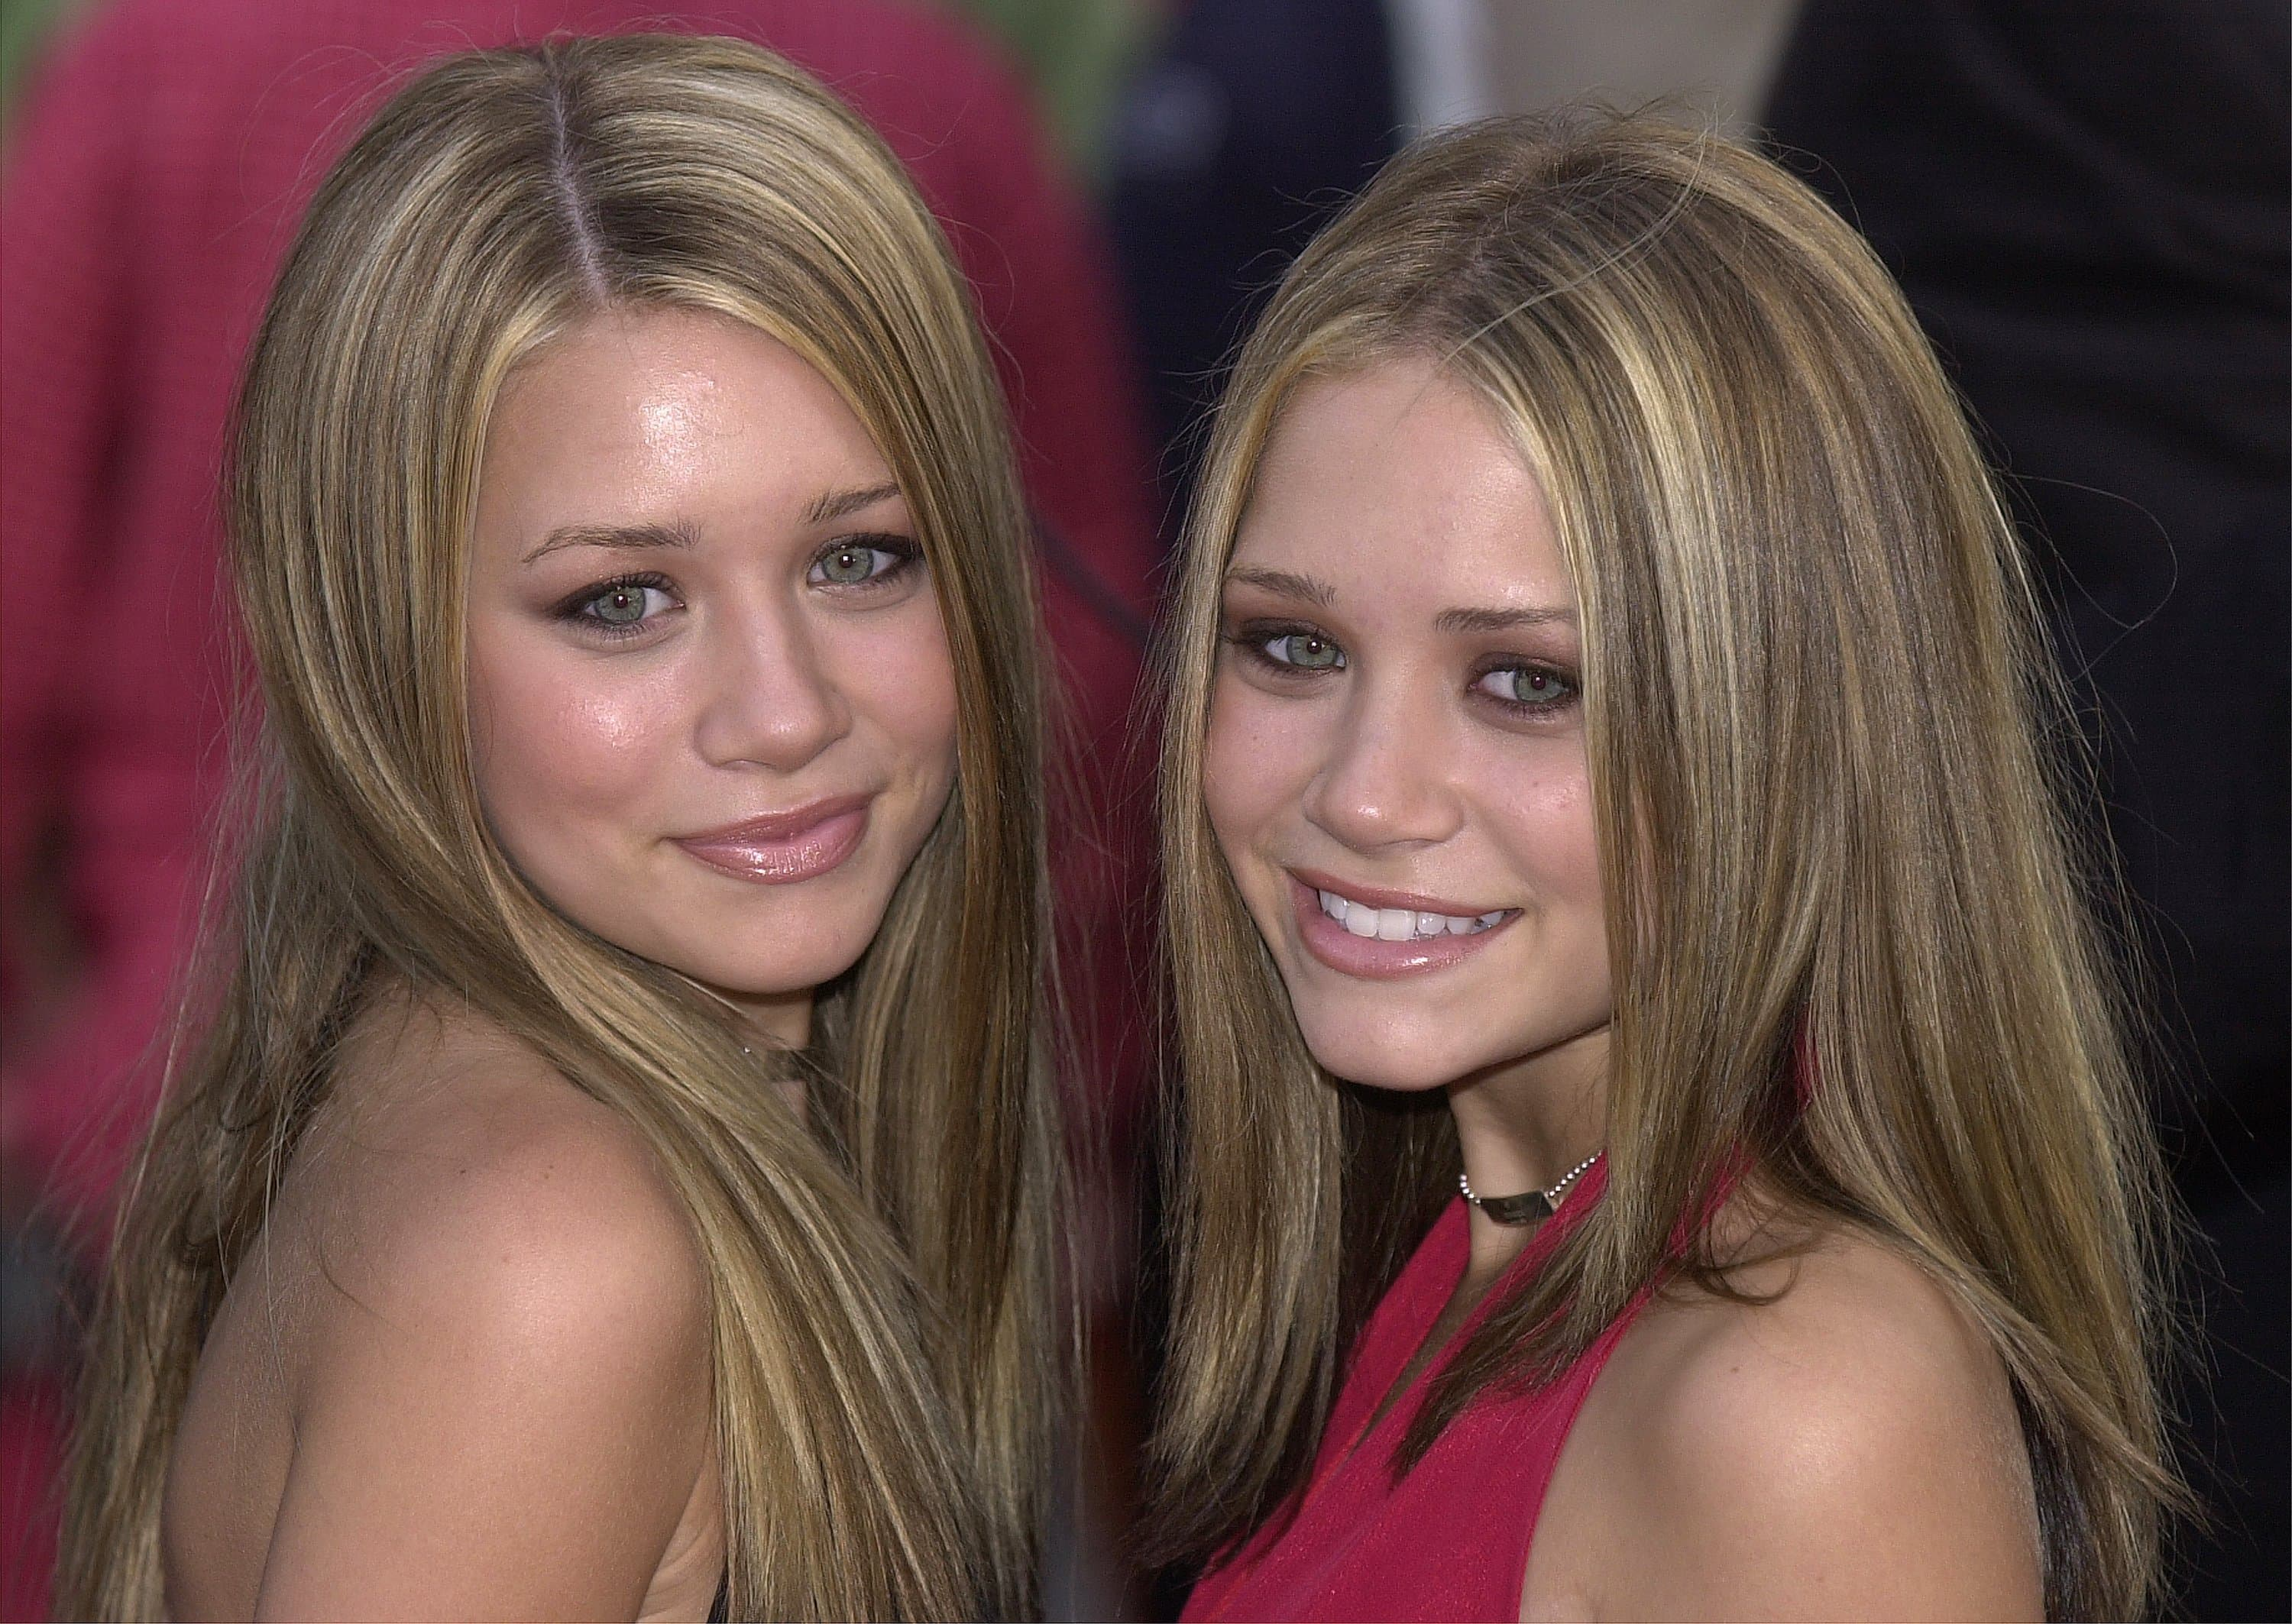 Mary Kate And Ashley Olsen Before Plastic Surgery photo - 1